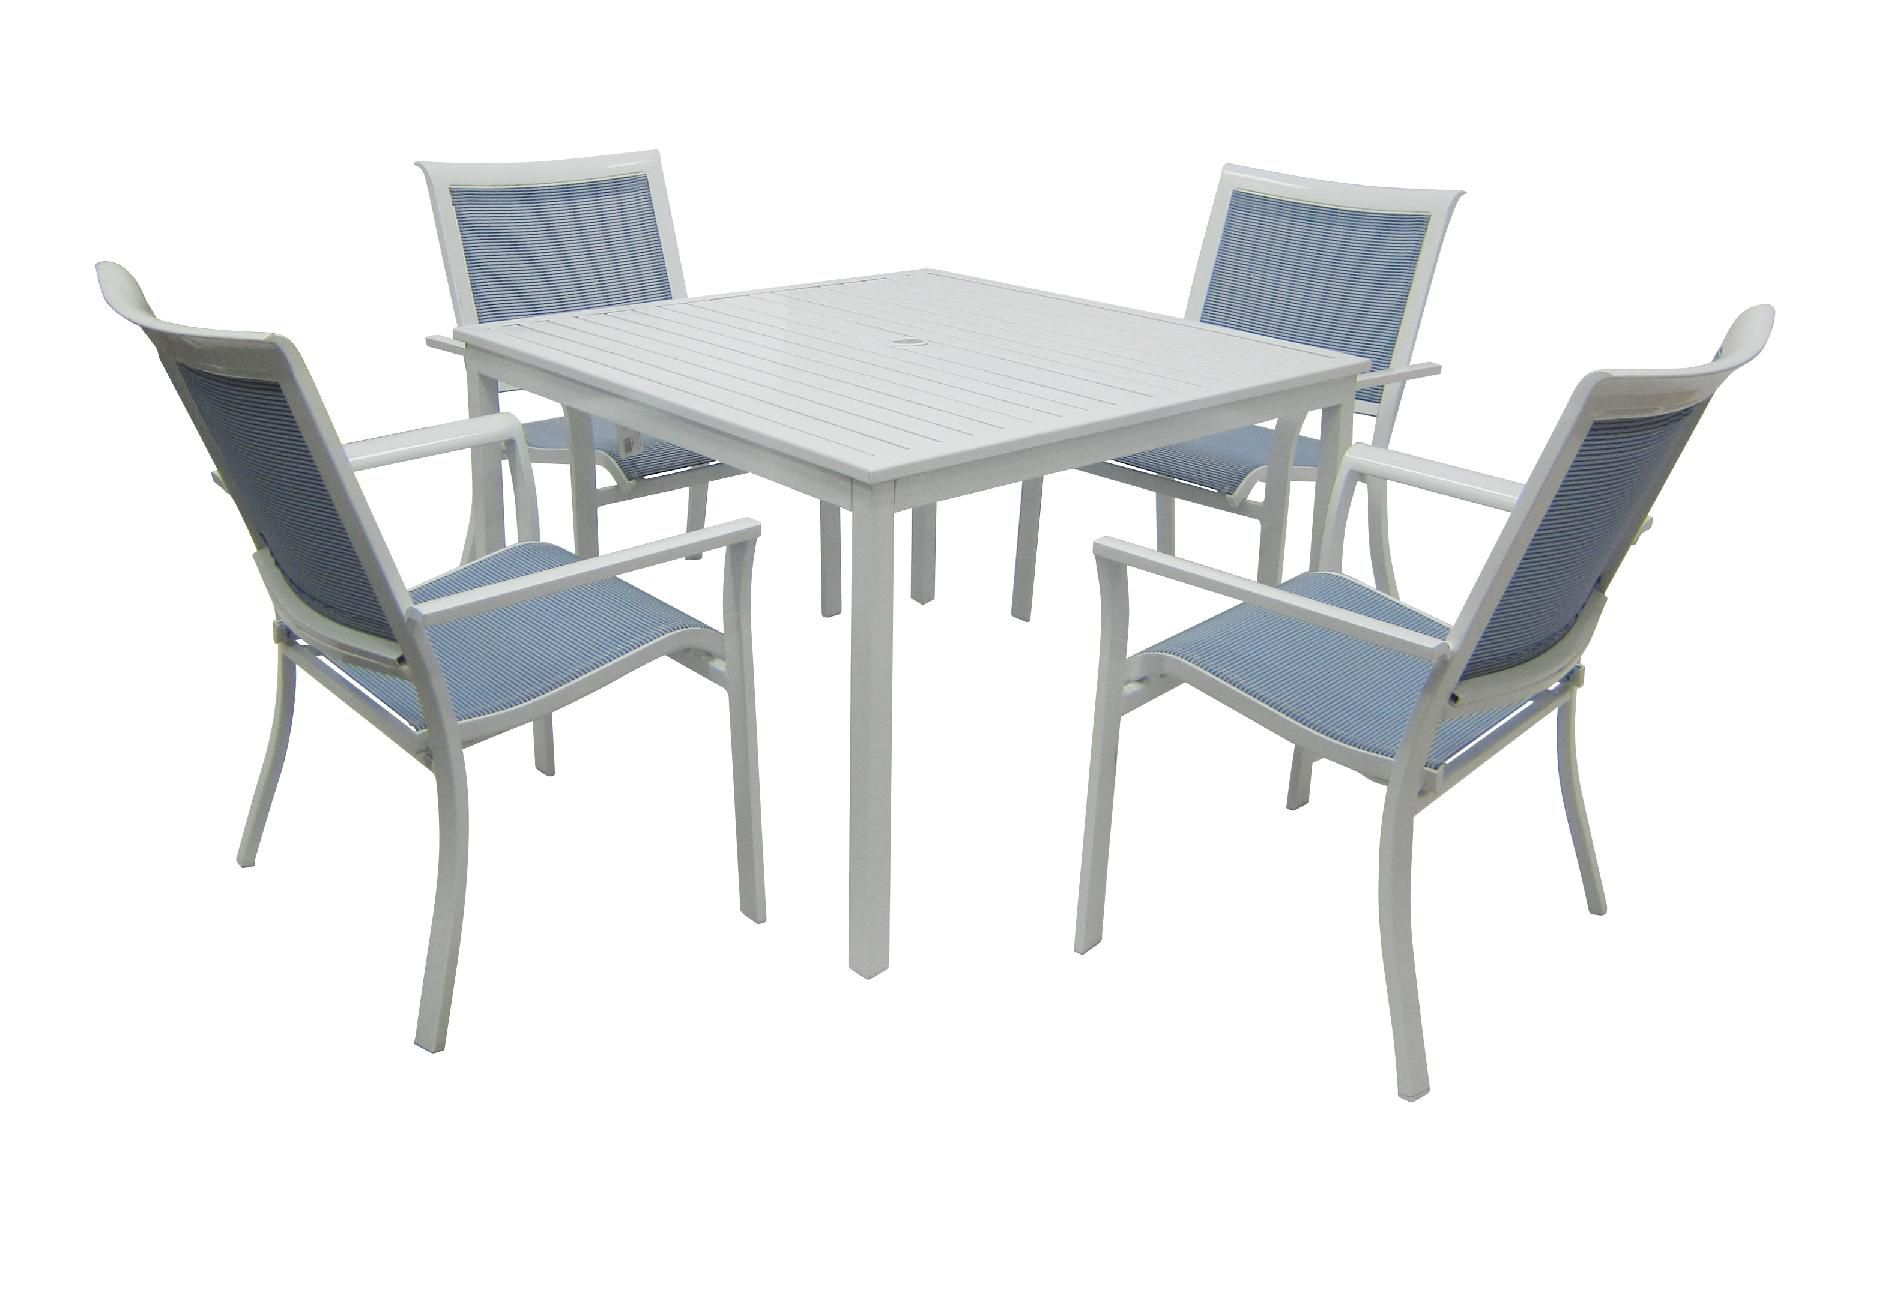 Grand Resort Glendora White 5 Pc. Dining Set